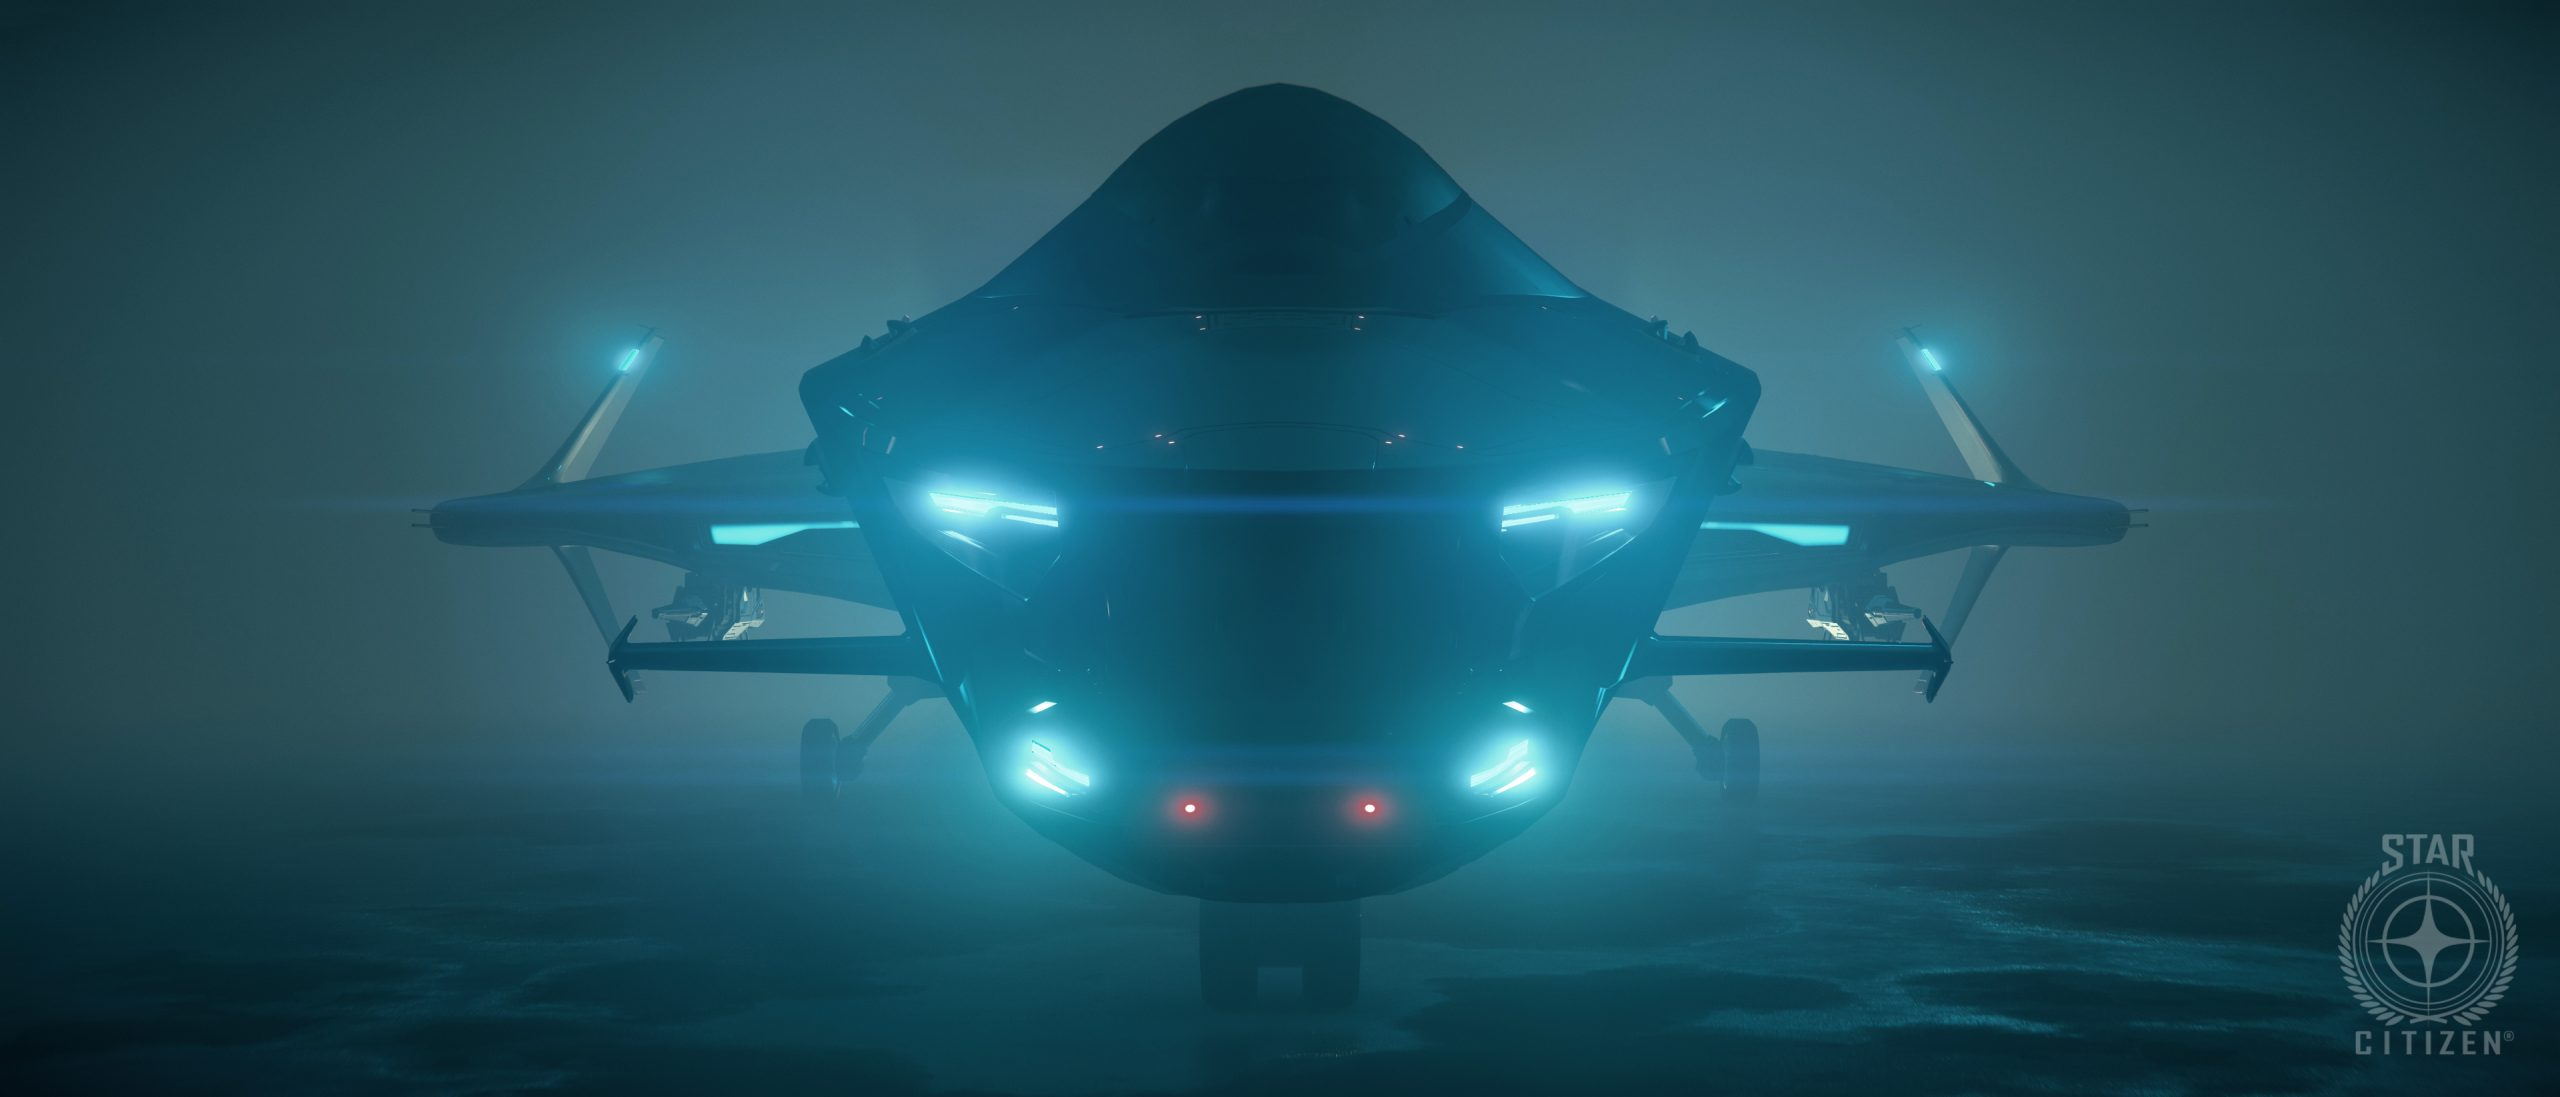 CloudImperiumGames StarCitizen Origin 125a Headlights 1 6550